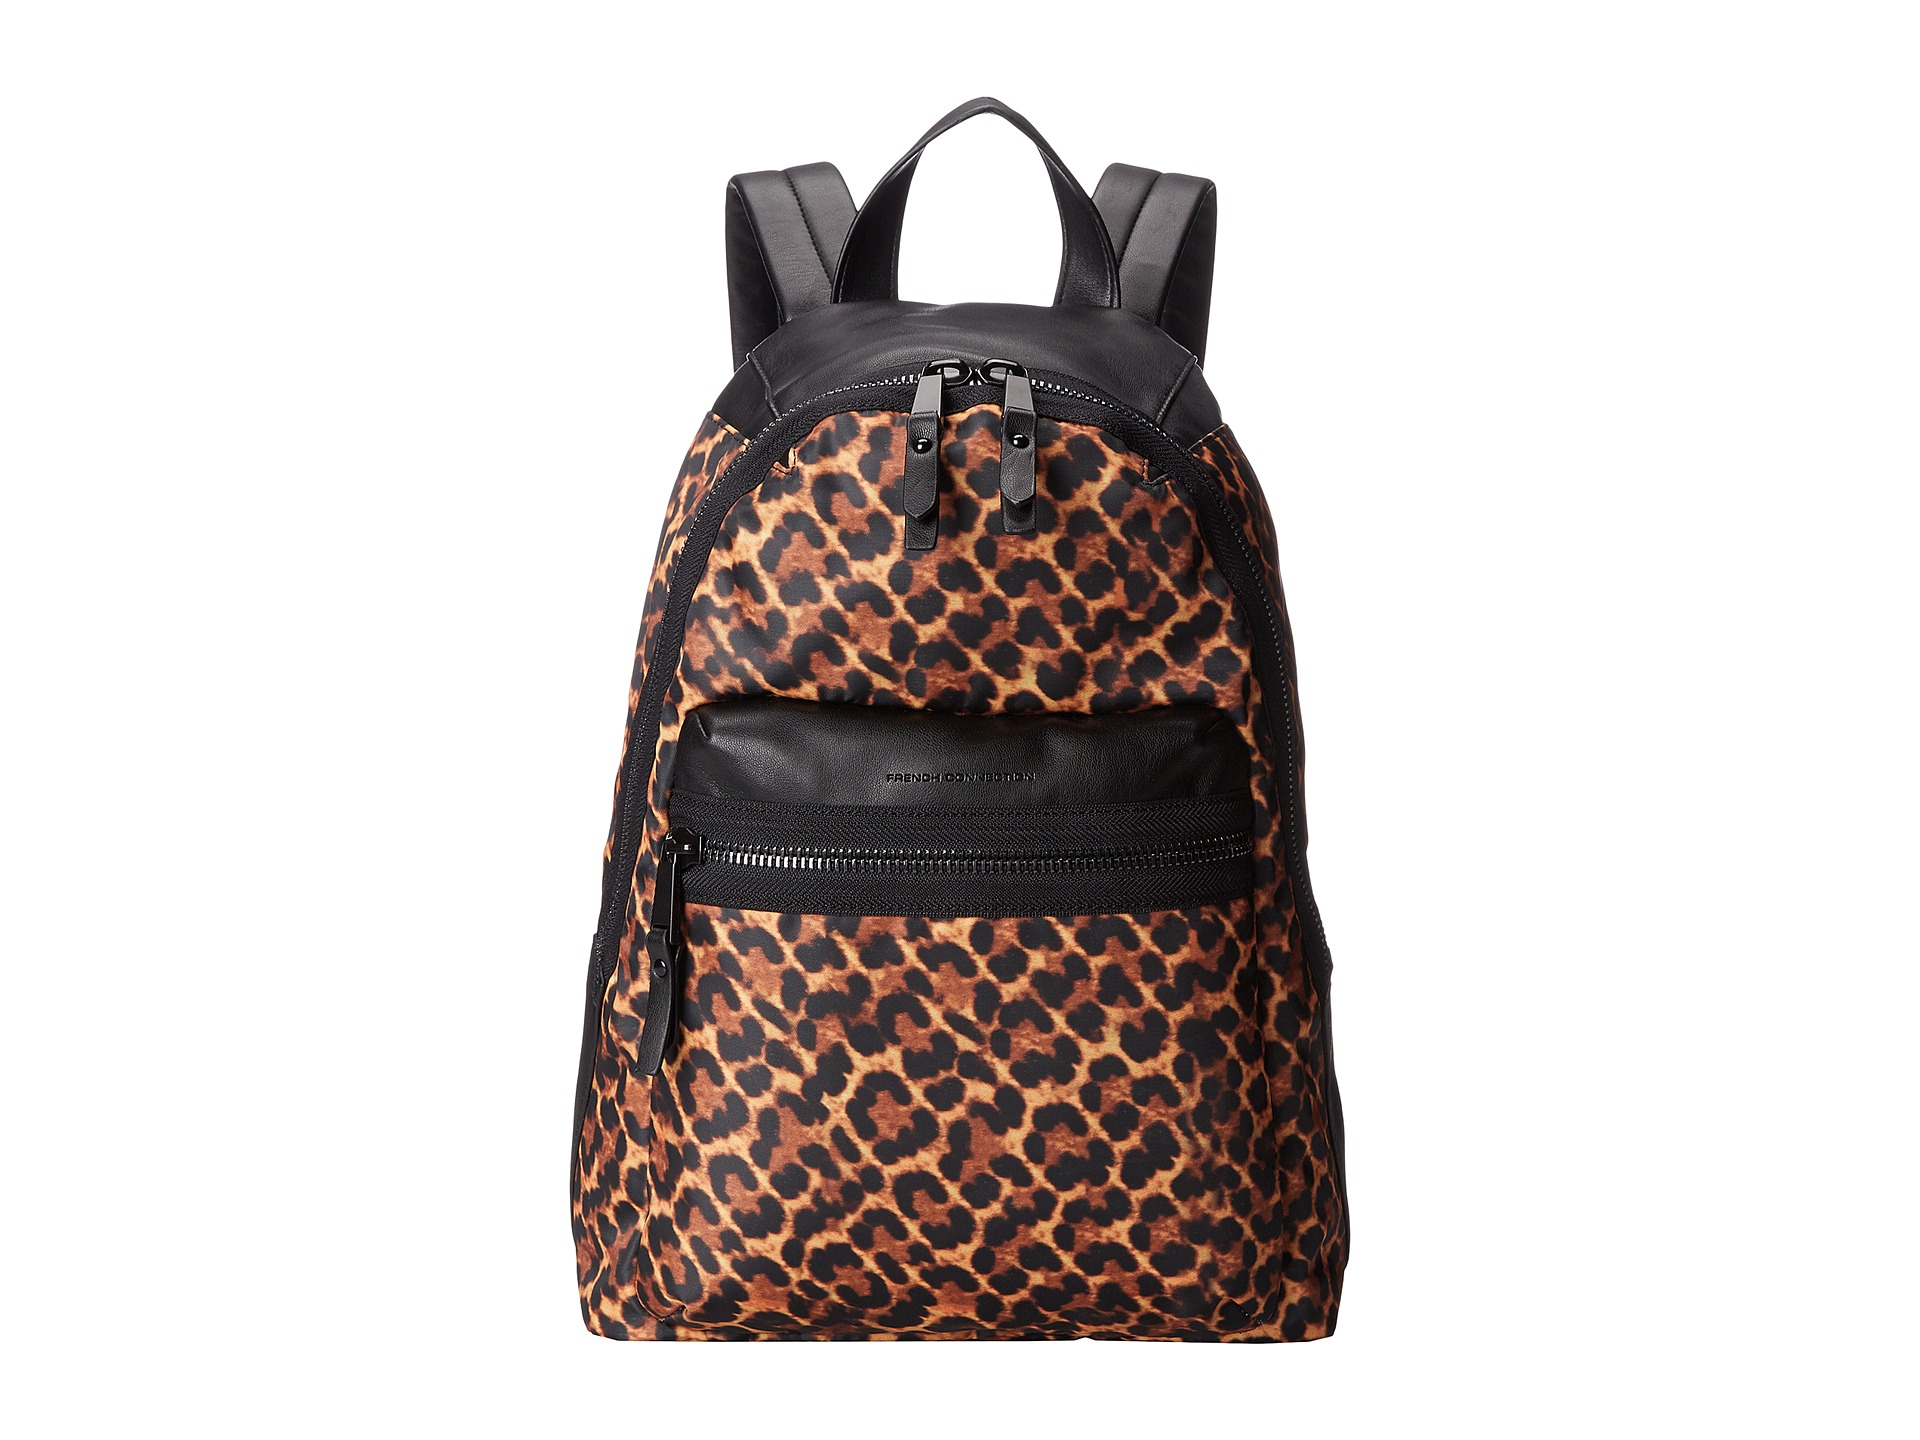 Cheetah Rolling Backpack - Crazy Backpacks